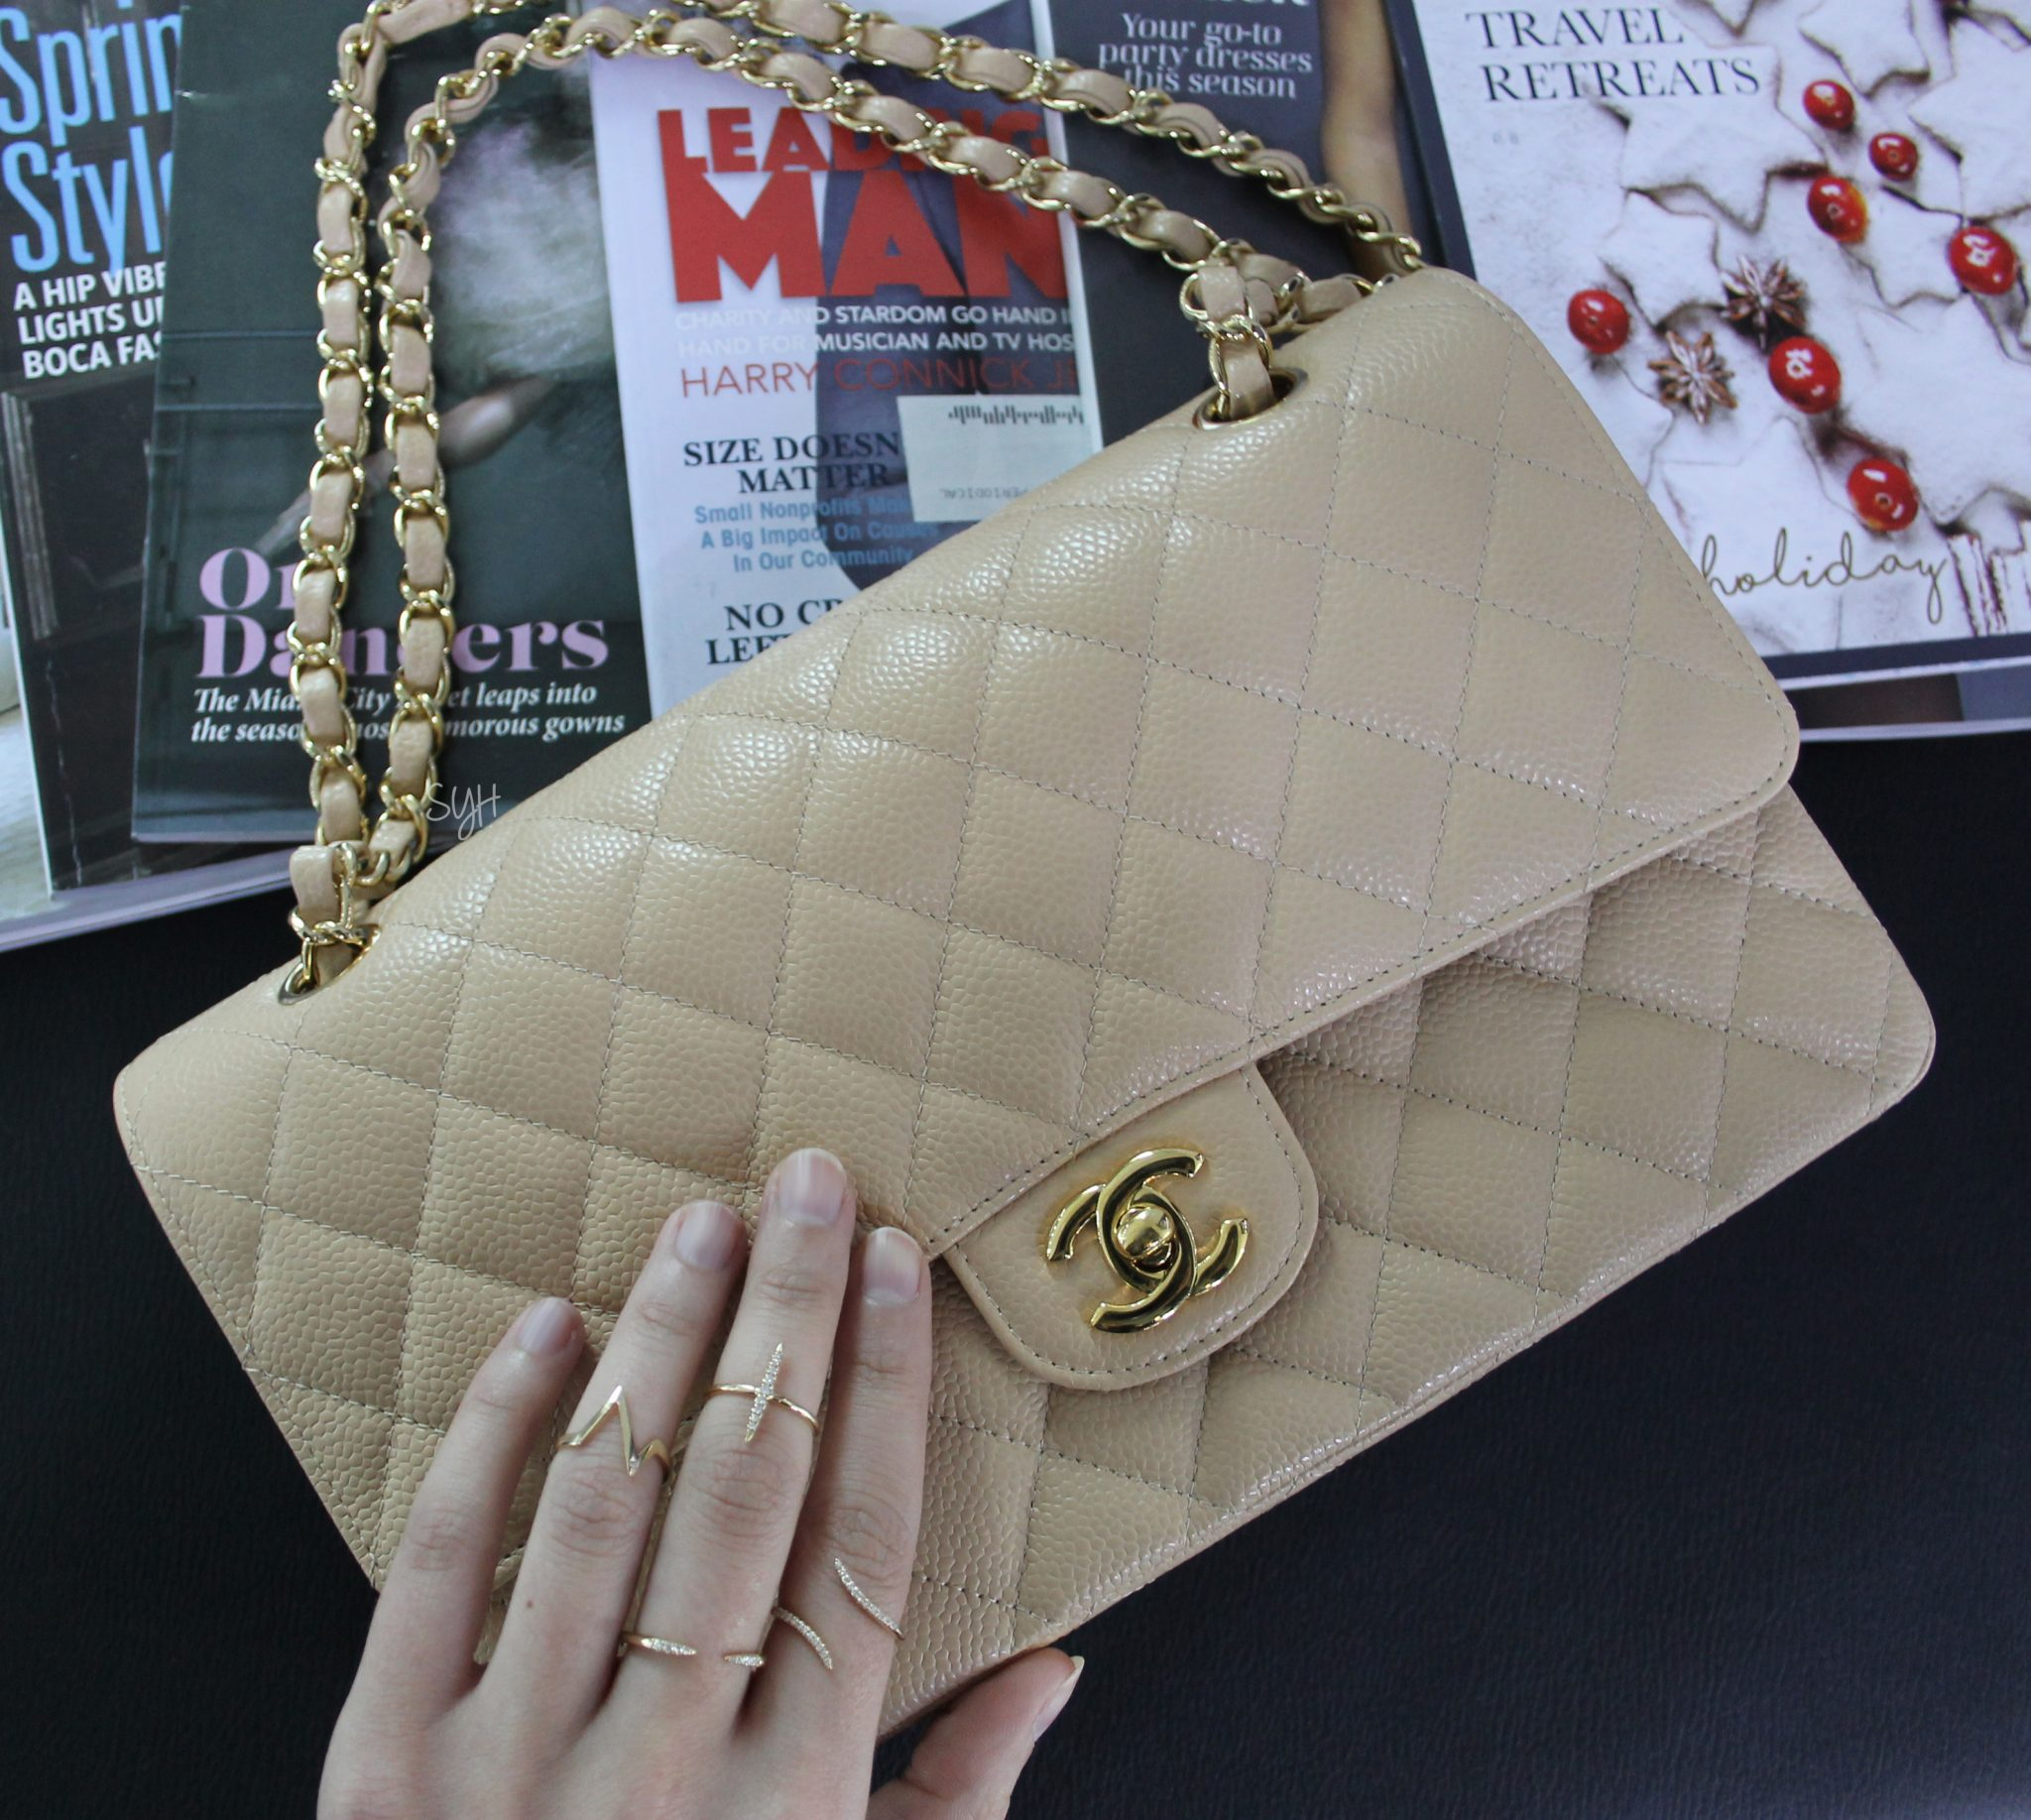 Chanel Classic Flap bags in Boca Raton